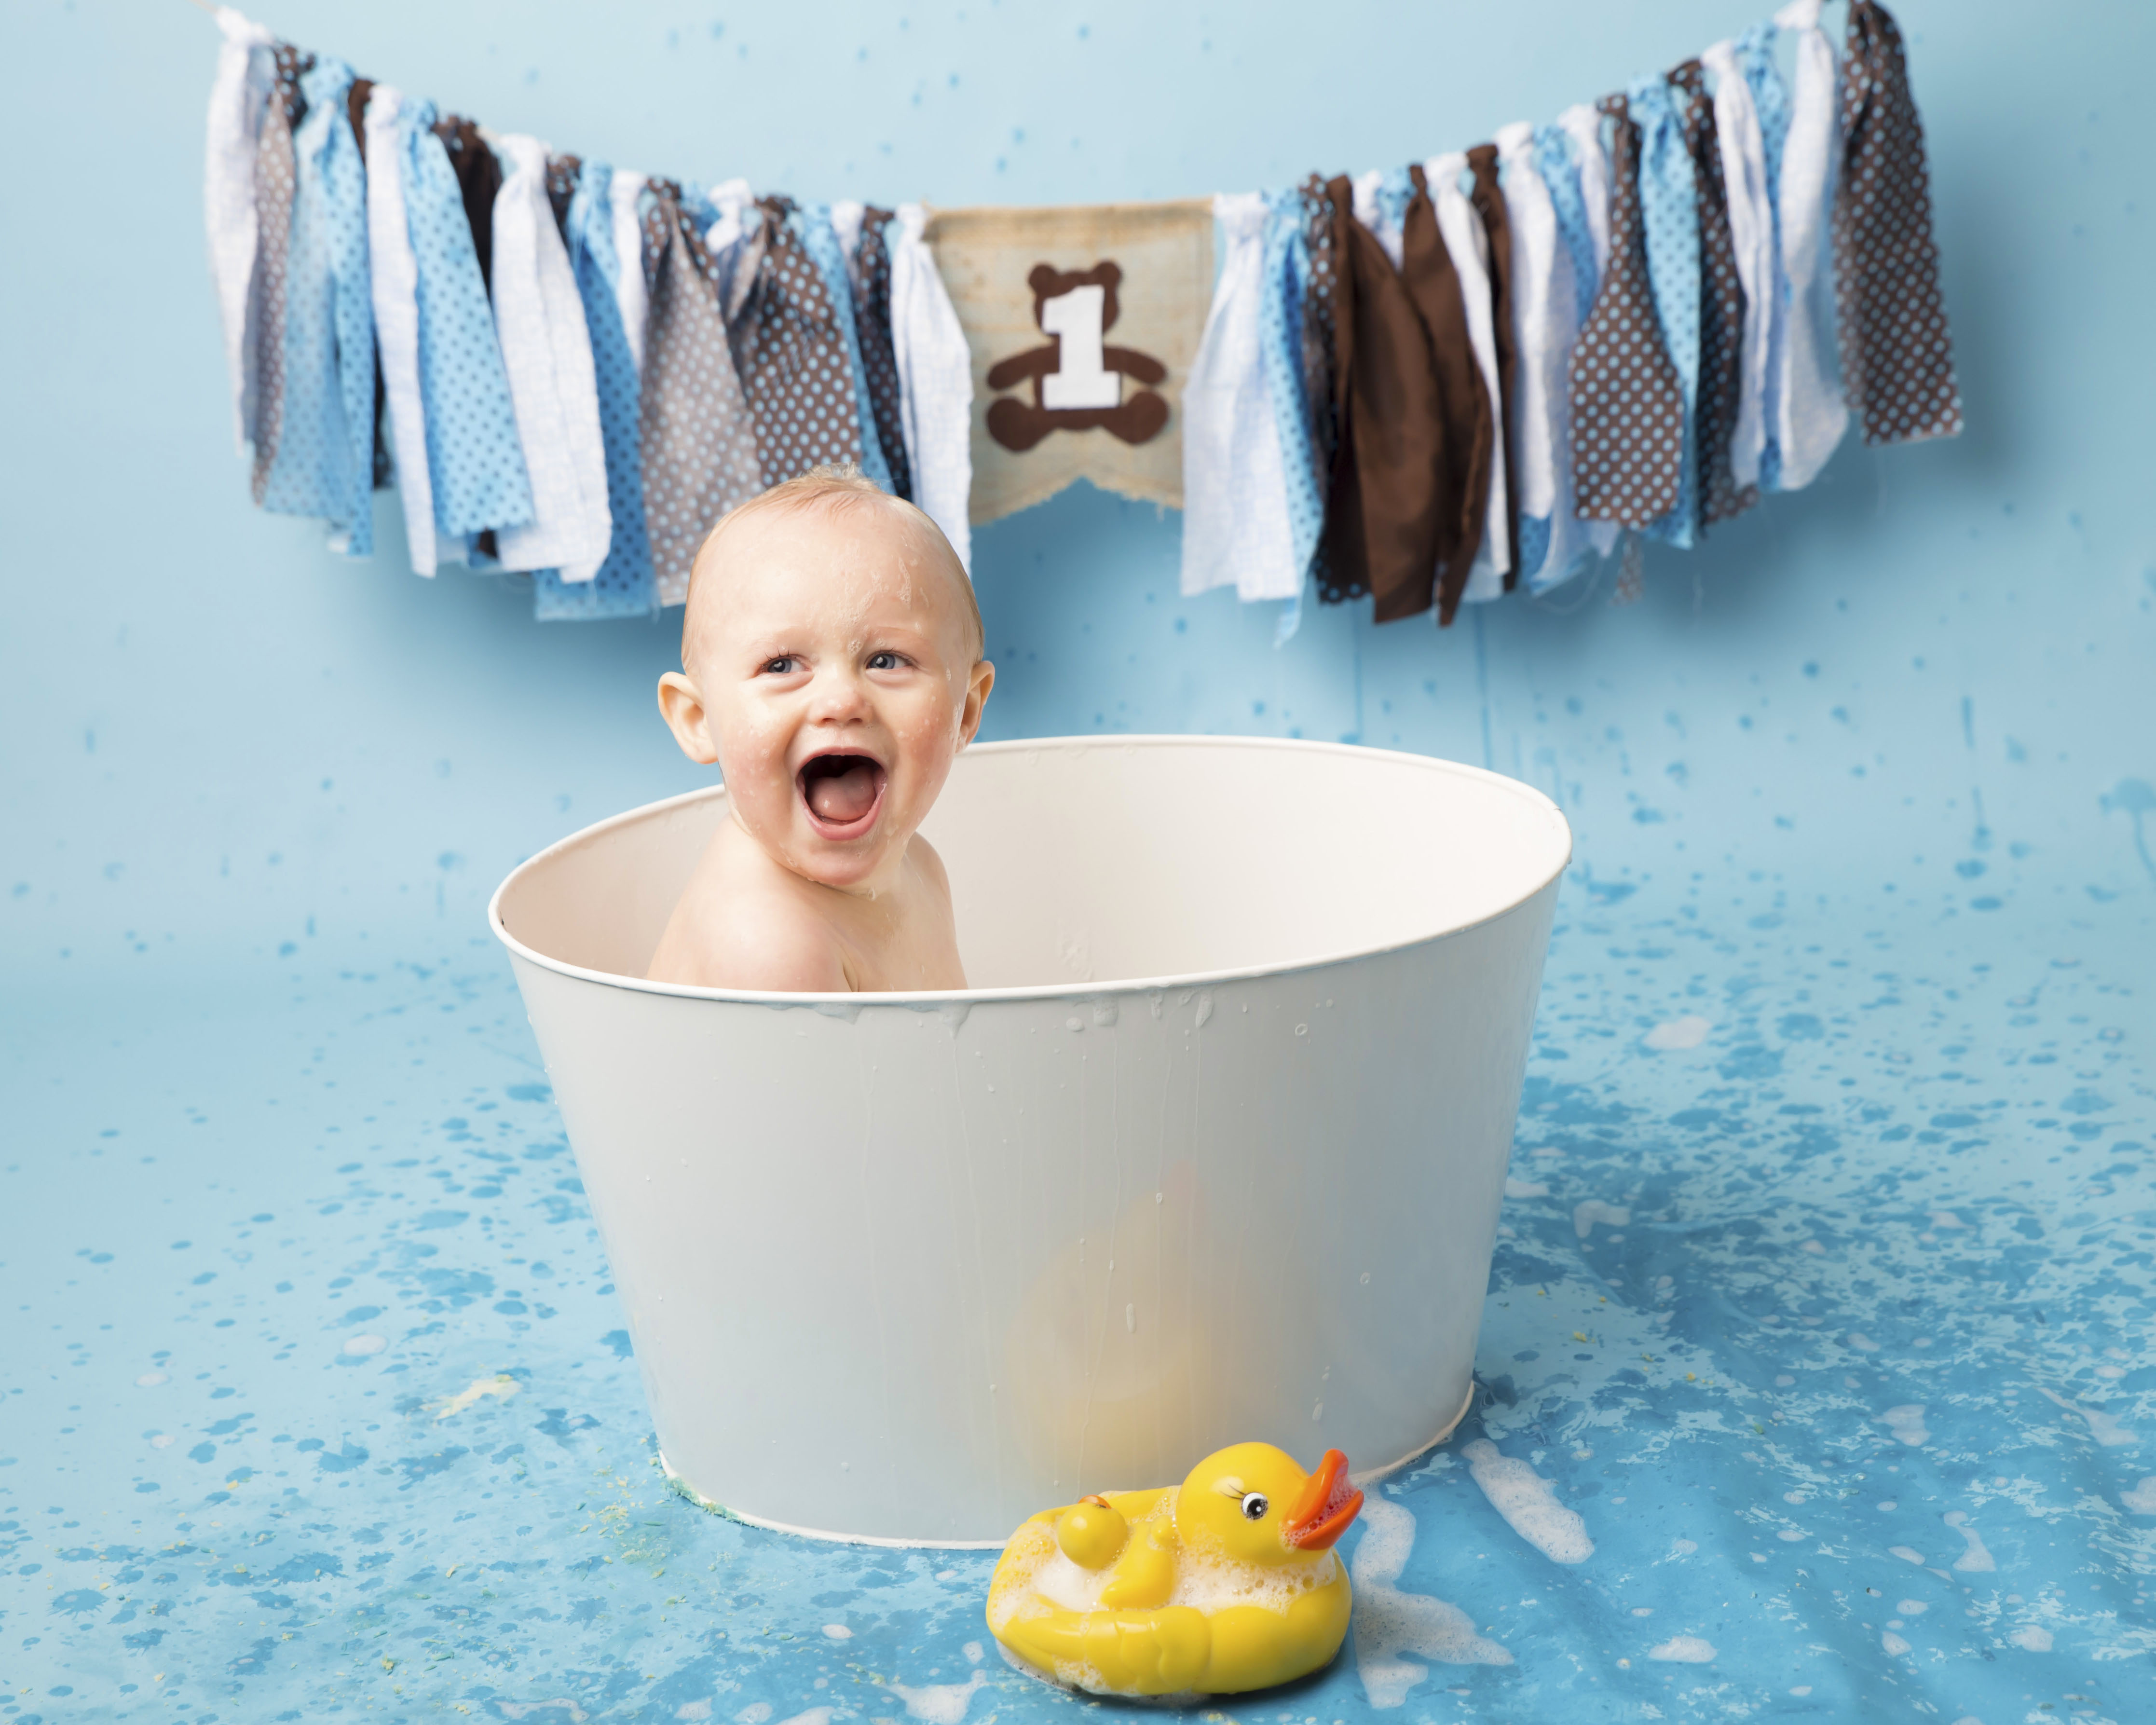 Baby Boy in a white tin bath with a yellow rubber duck - Wirral based Photographer - Hoylake, Caldy, New Brighton, Wallasey, Moreton